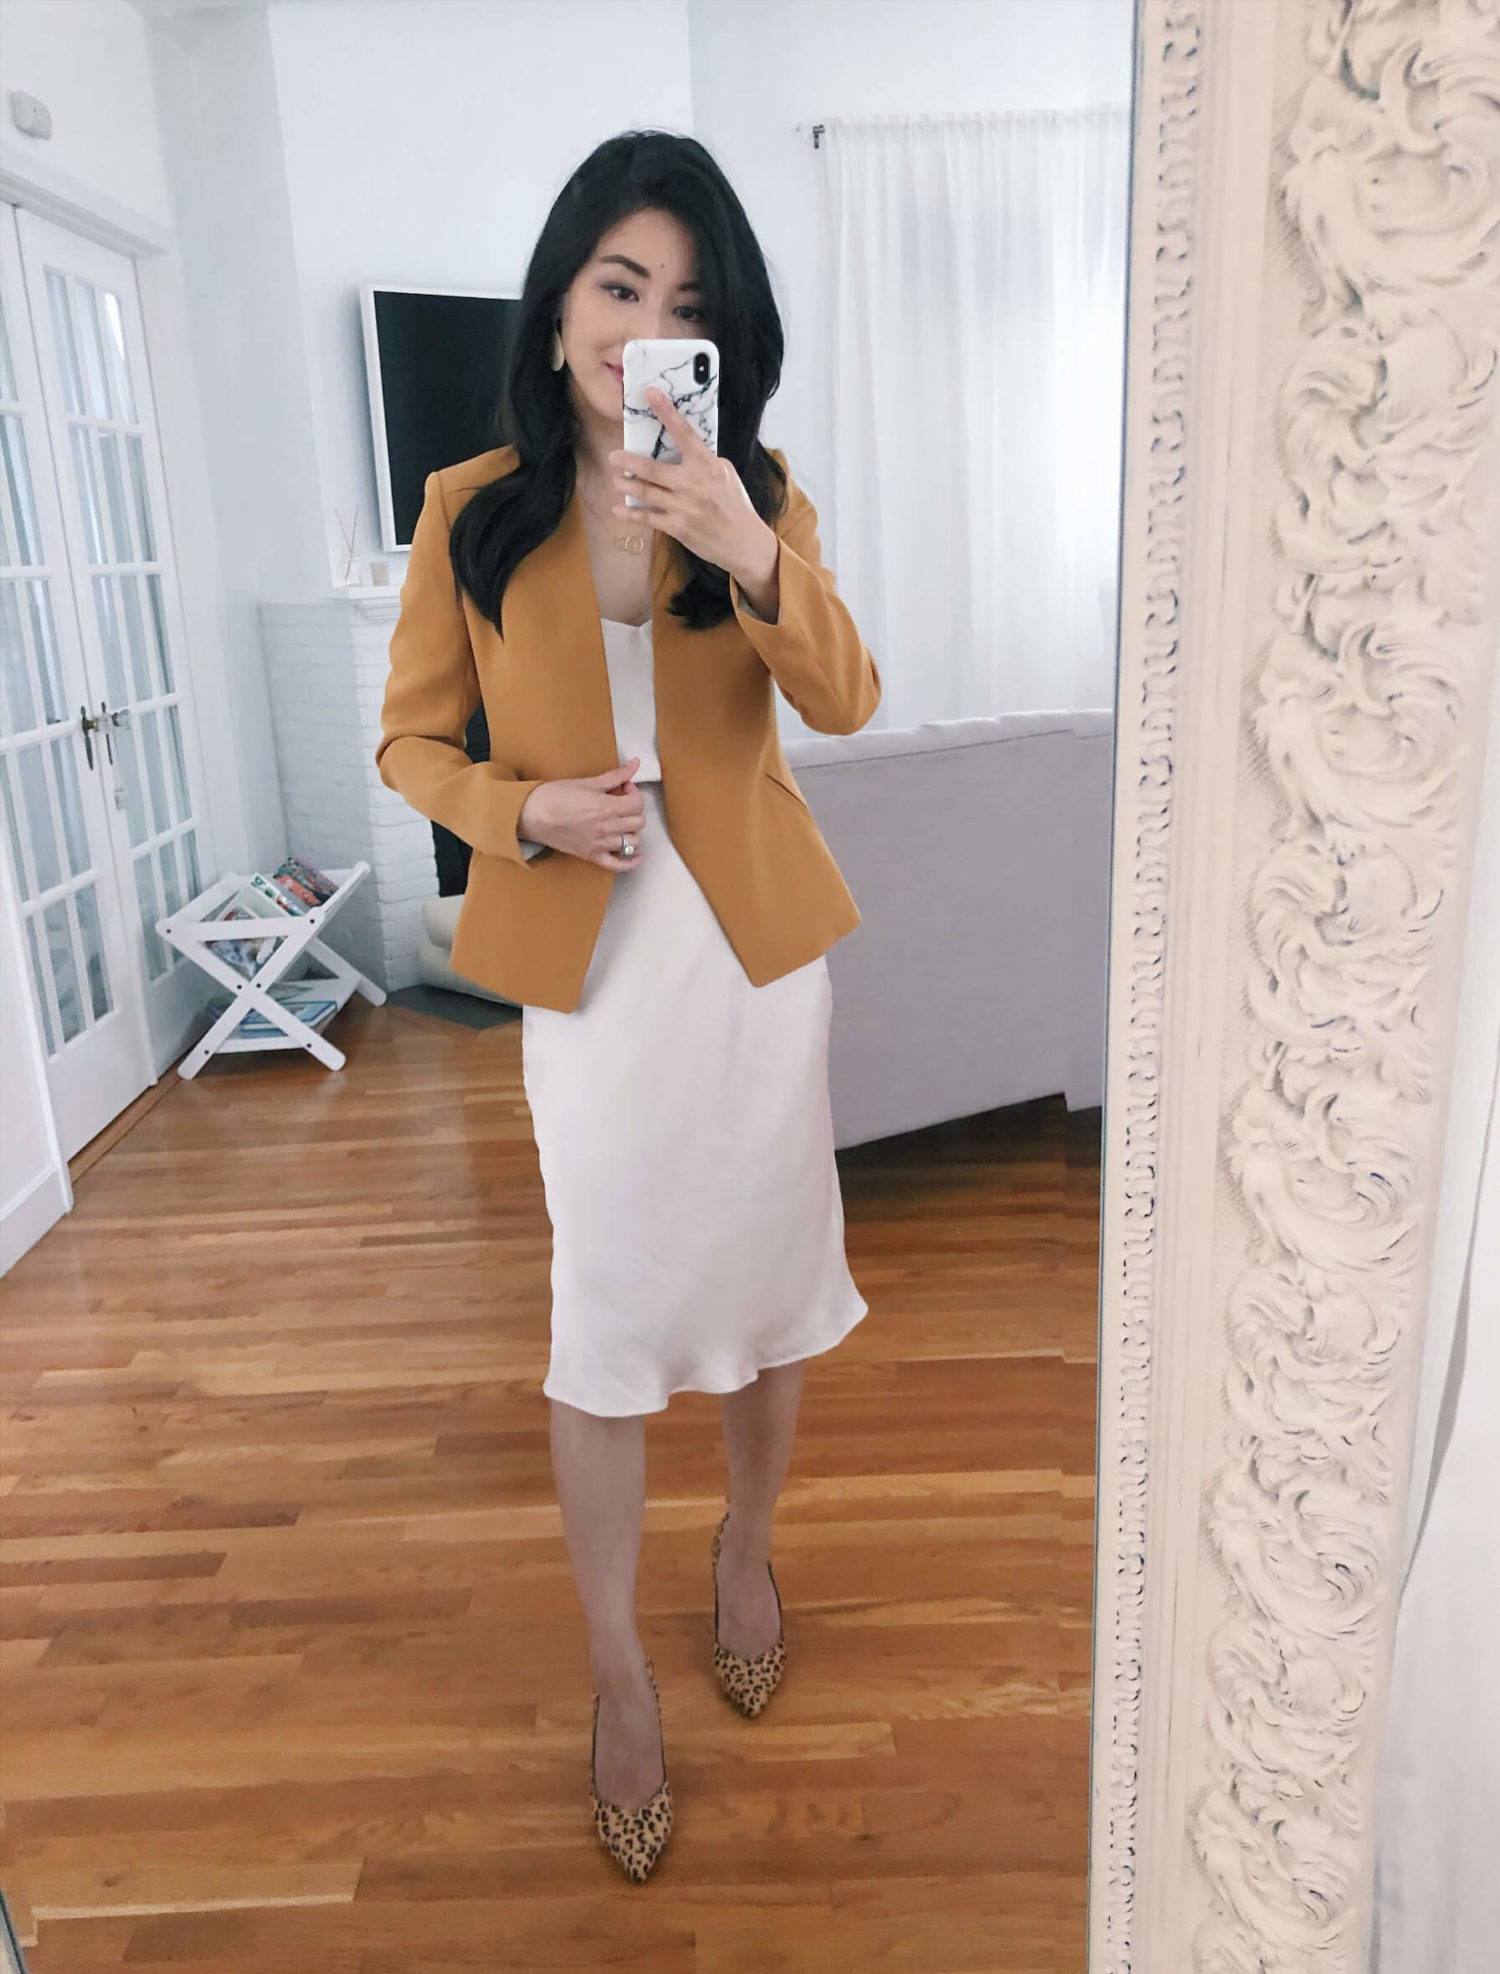 slip dress outfits and petite try on